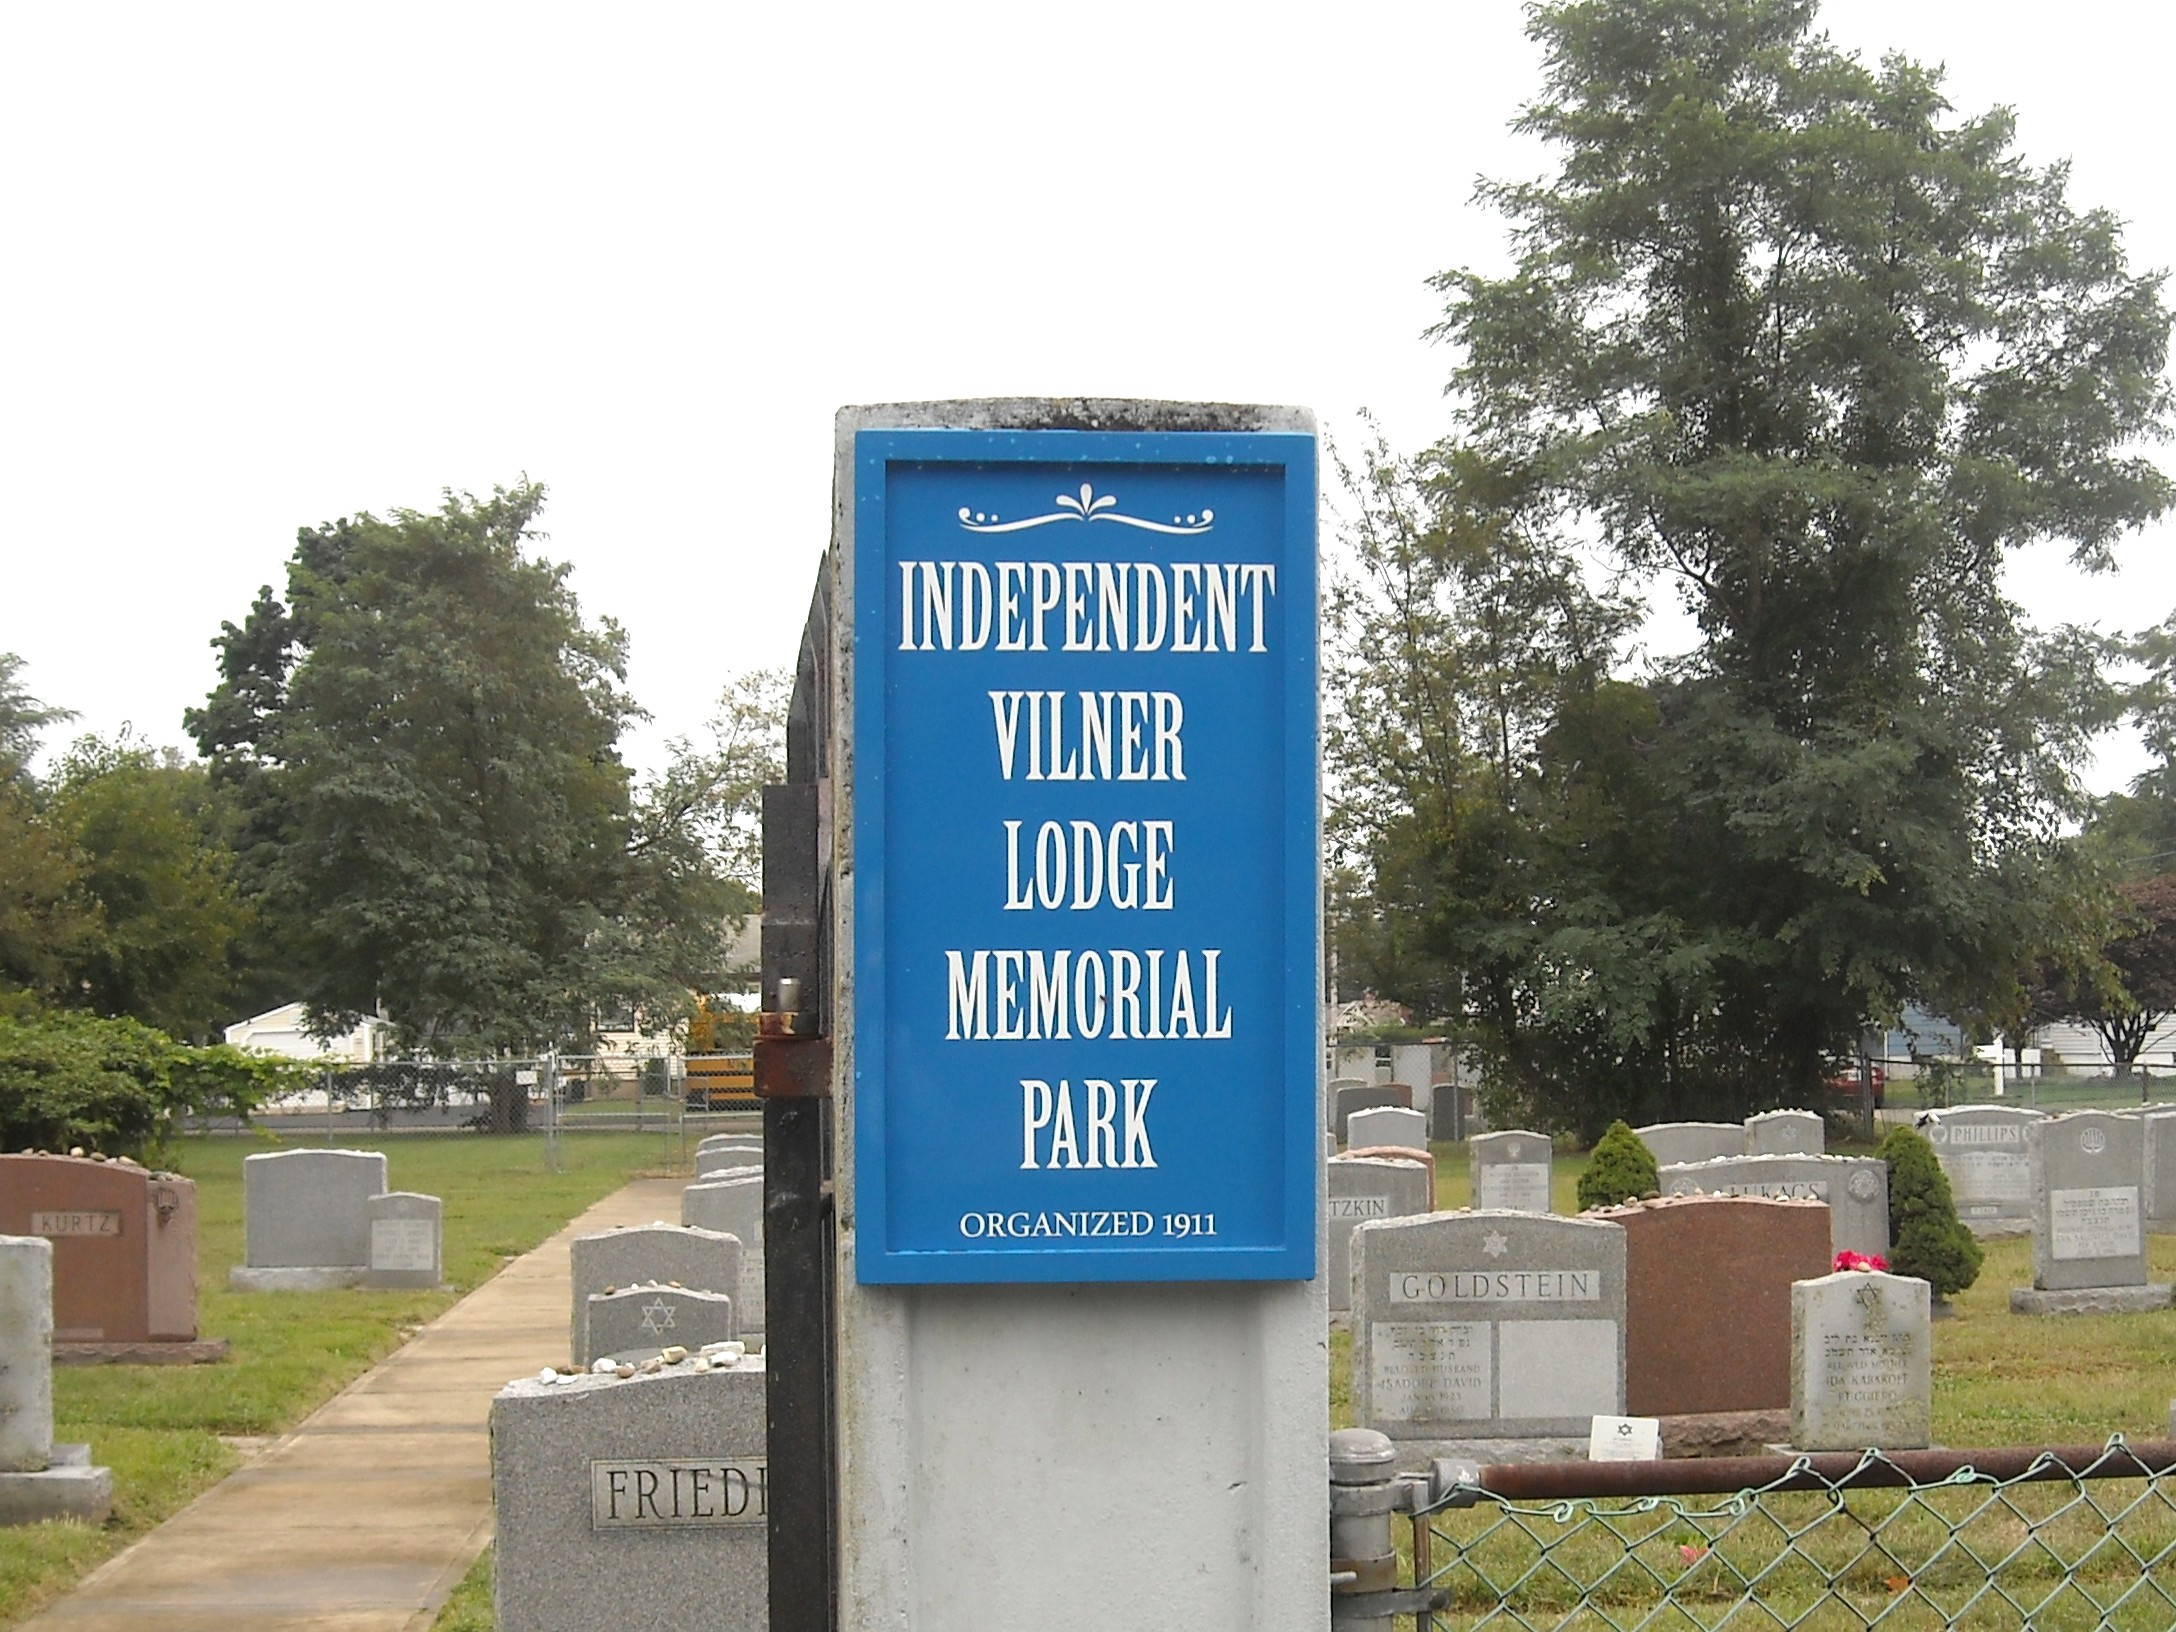 Vilner Lodge Memorial Park